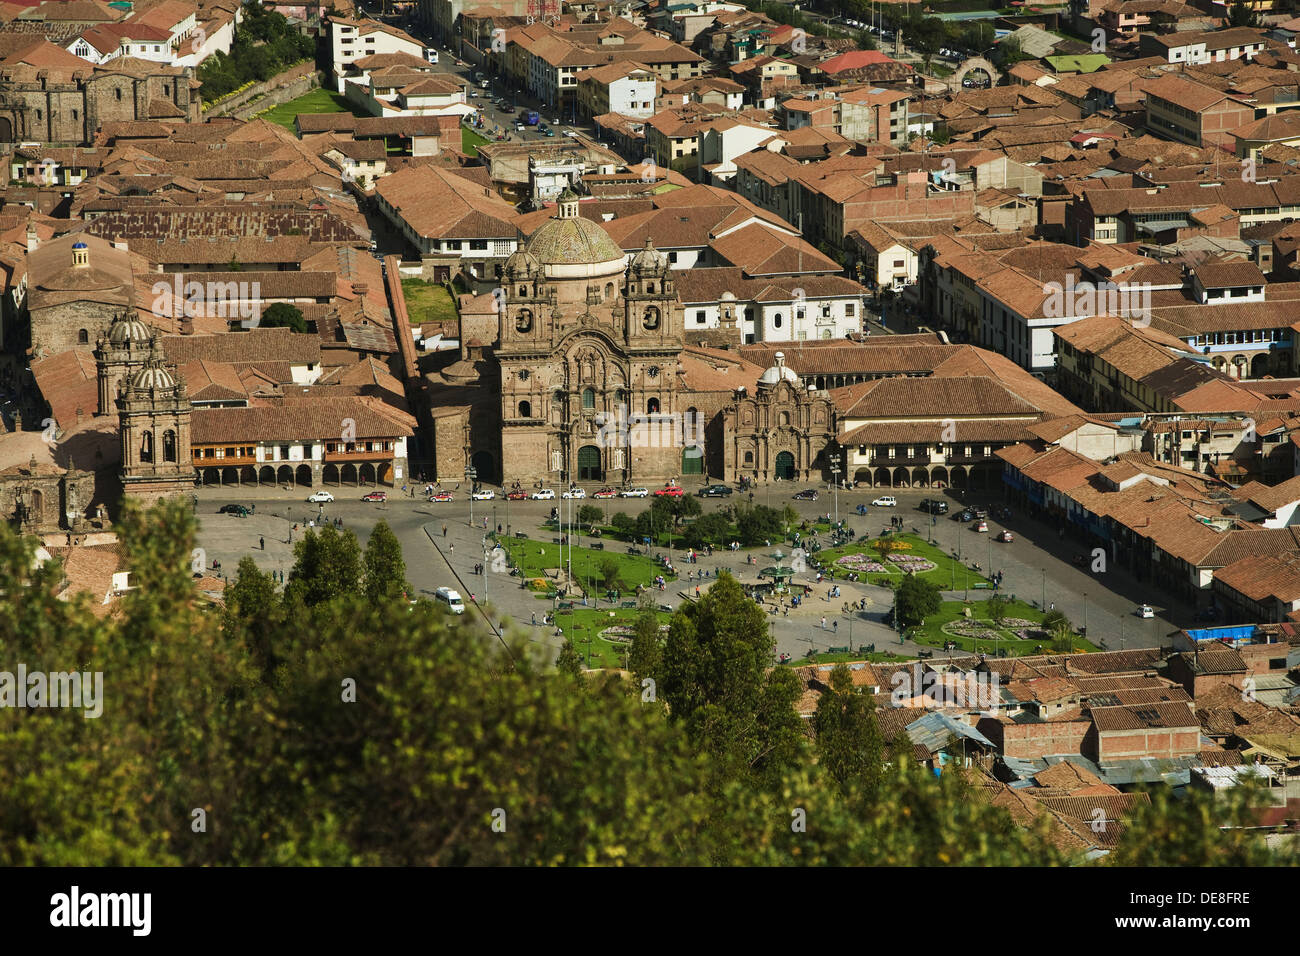 Cathedral and church of the Society of Jesus in Plaza de Armas, Cusco, Peru - Stock Image